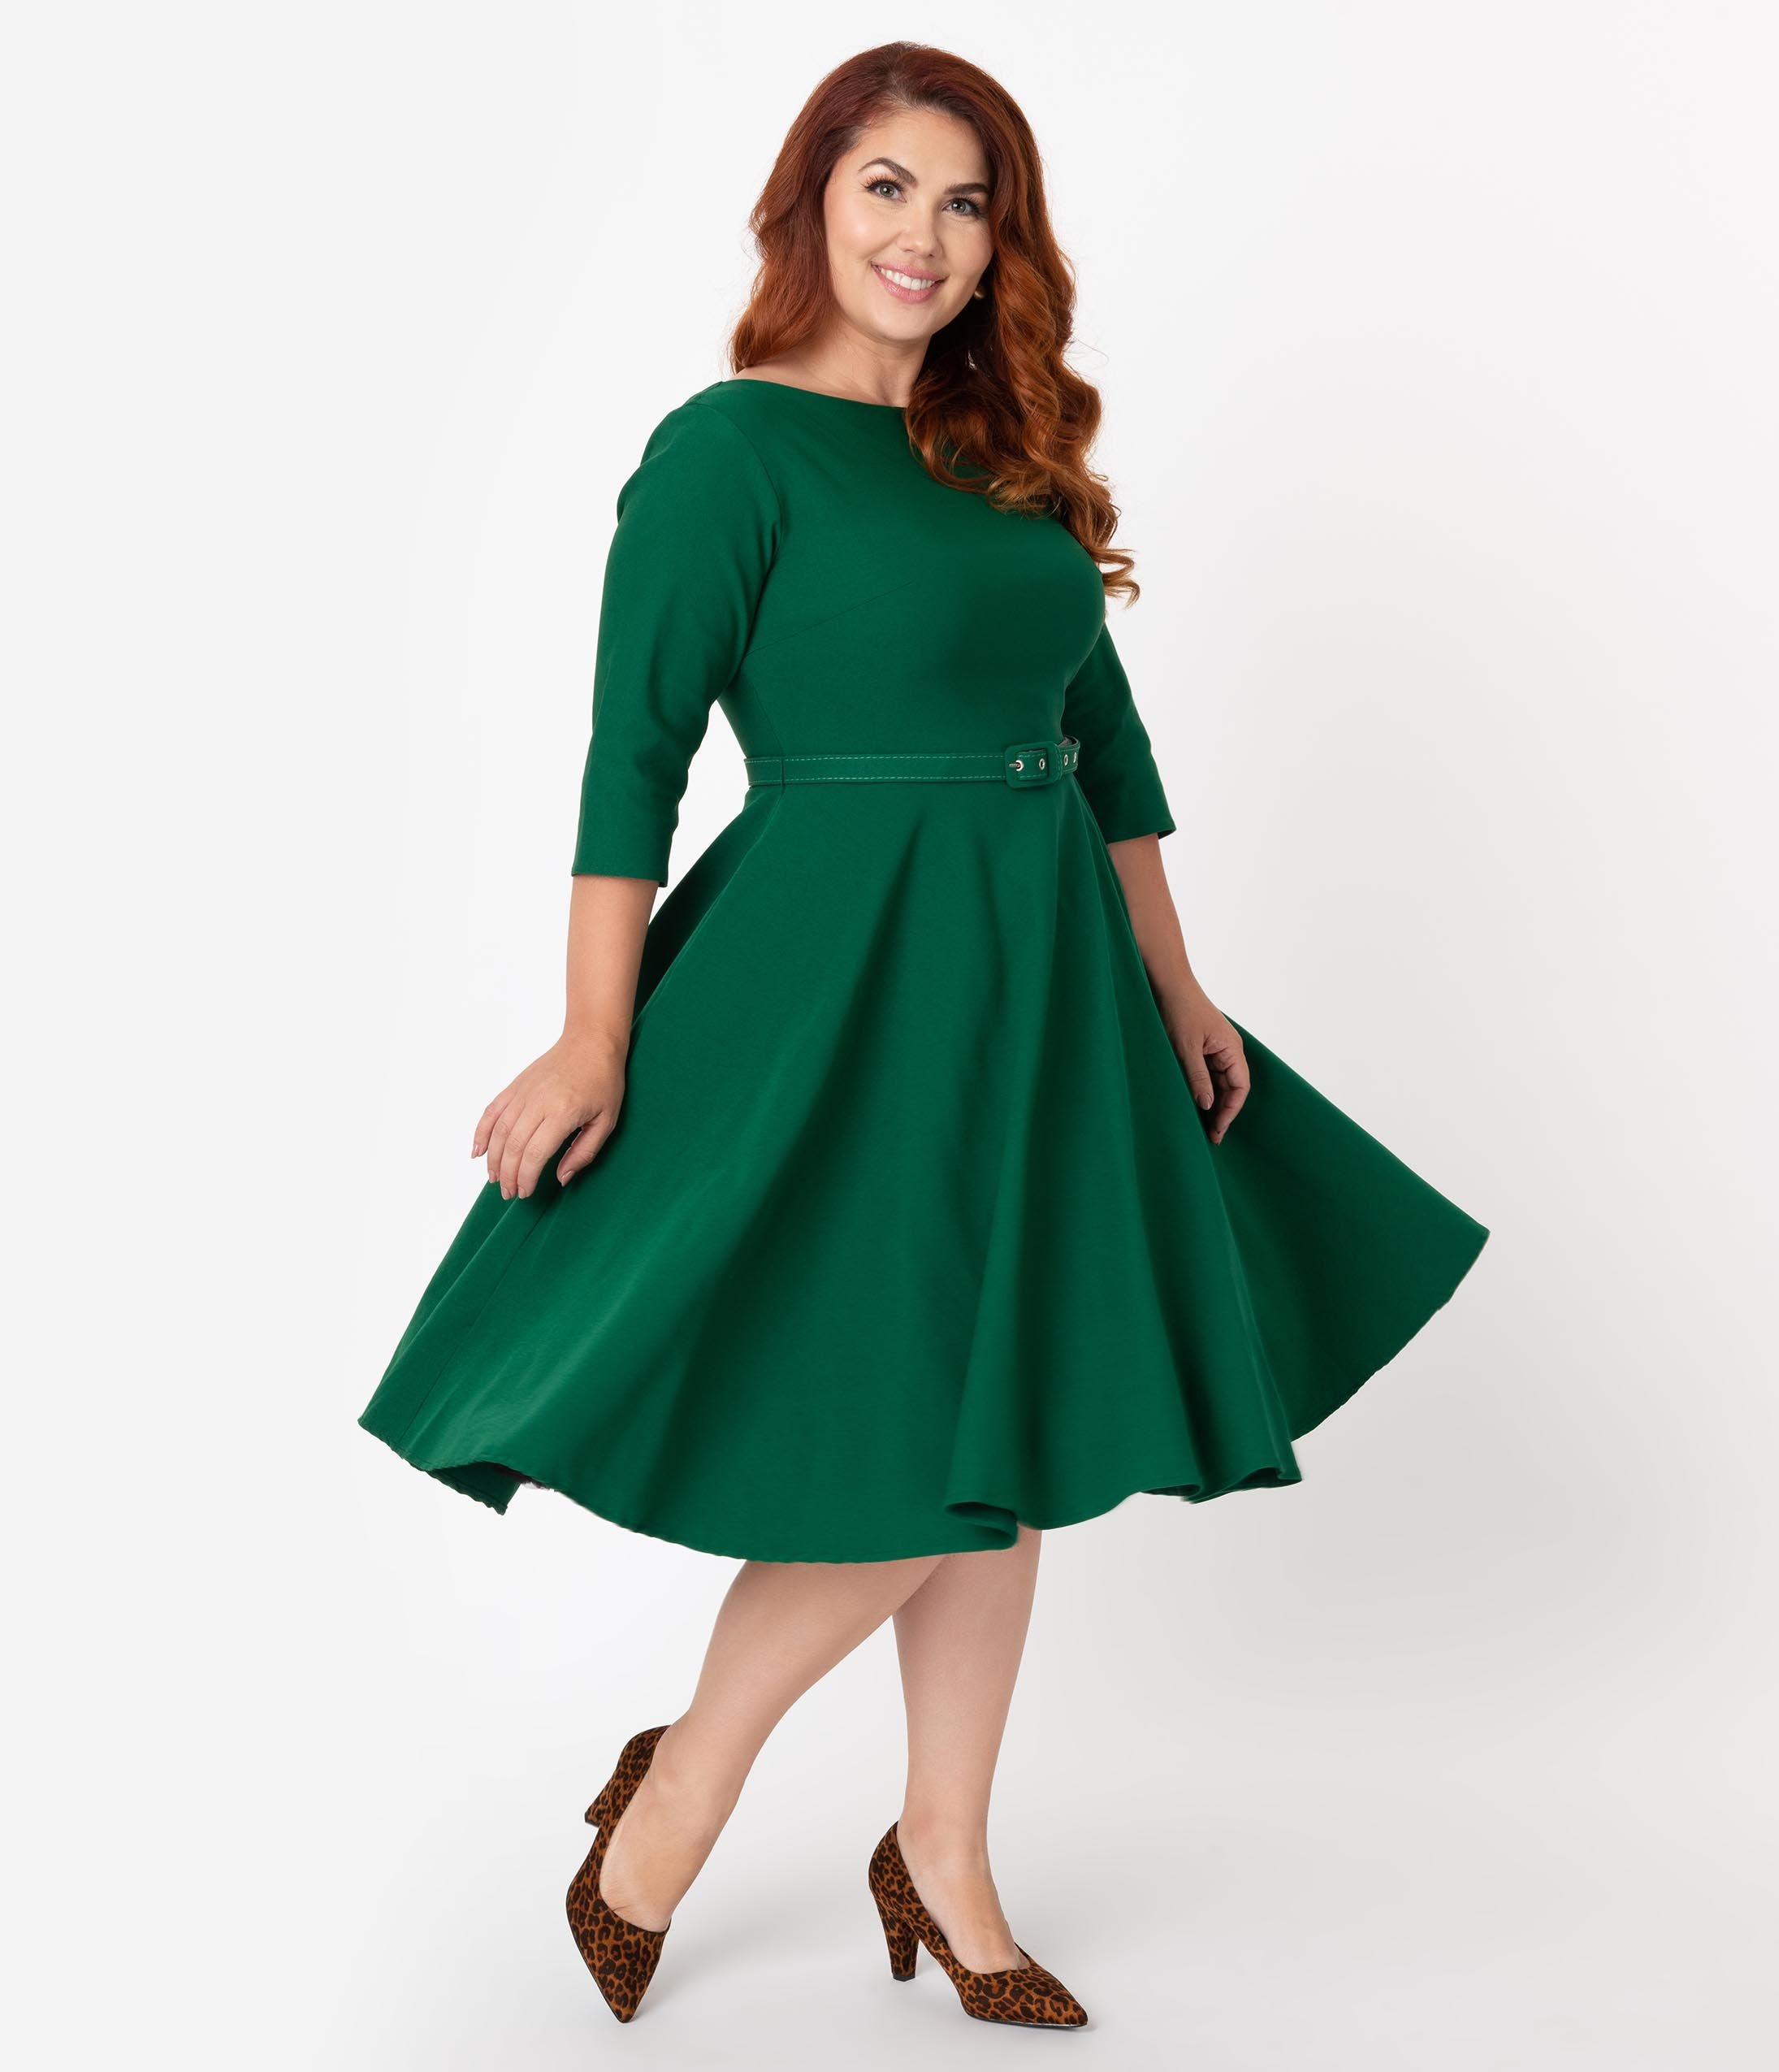 1950s Plus Size Dresses Swing Dresses